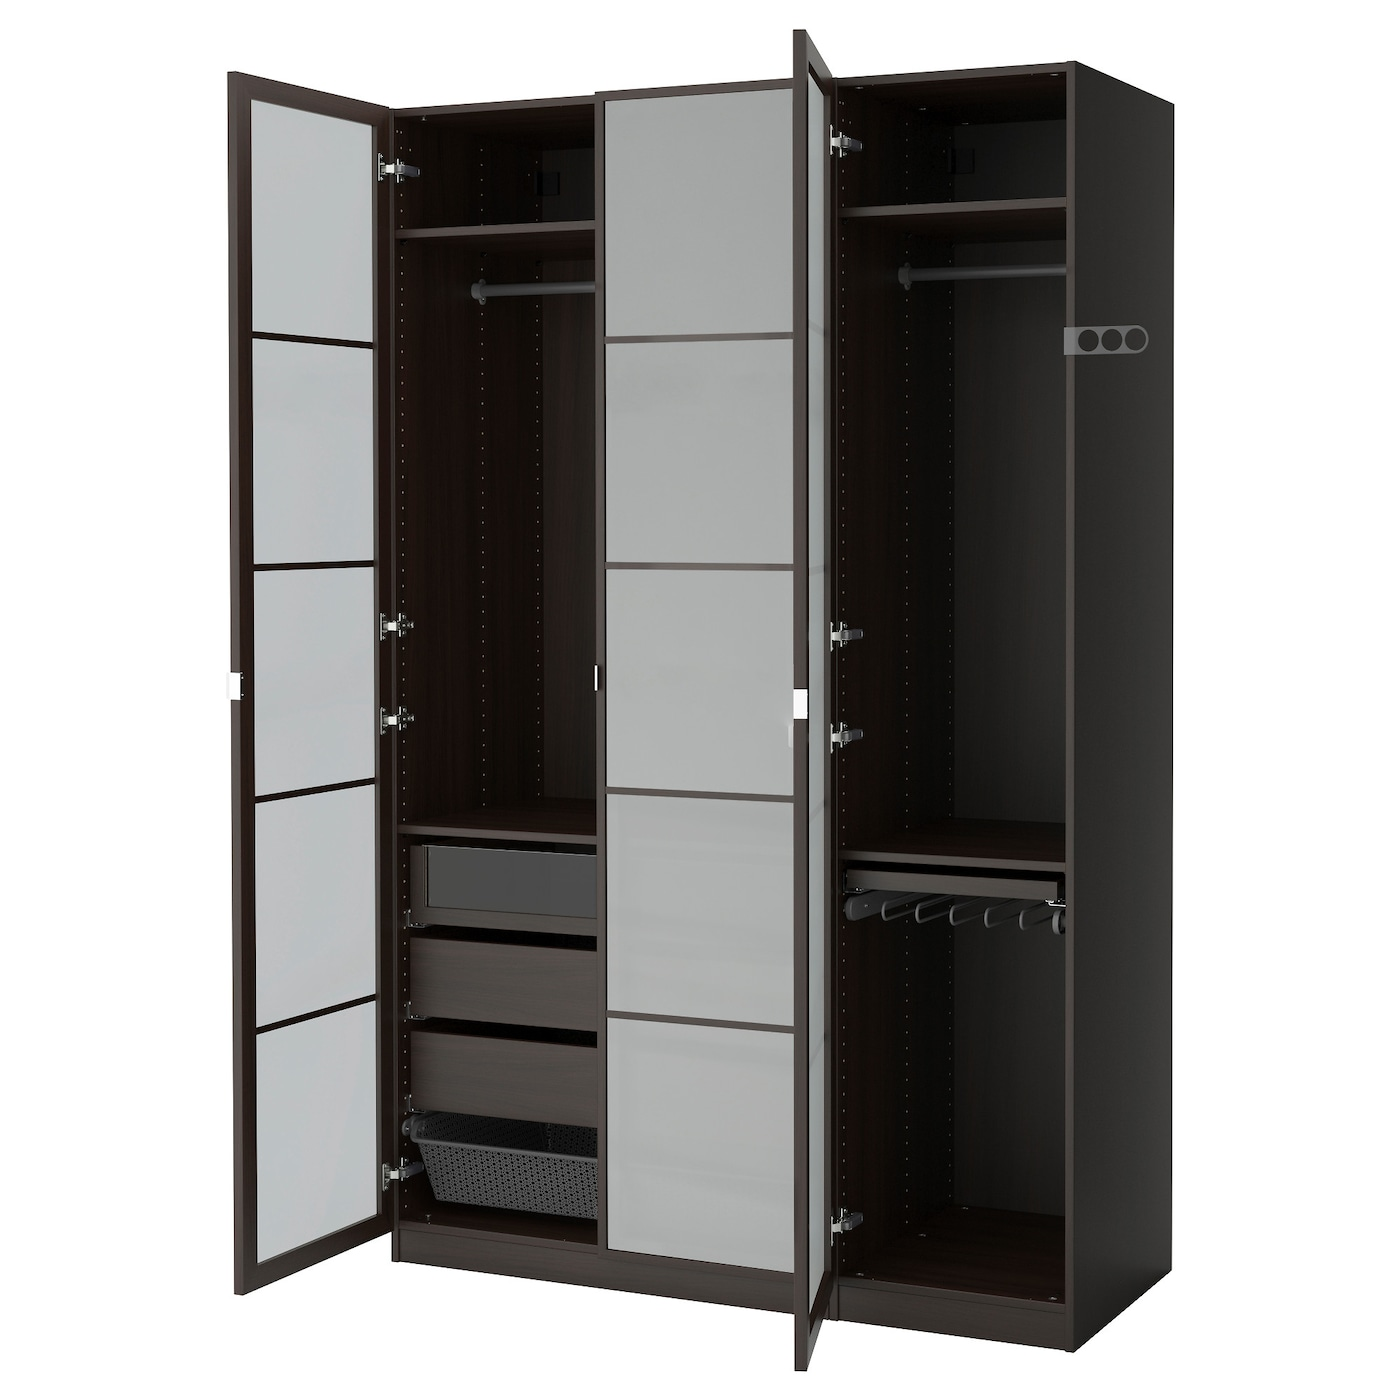 m bel online angebote 1291 bis 1300 bei ikea im online shop seite 130. Black Bedroom Furniture Sets. Home Design Ideas